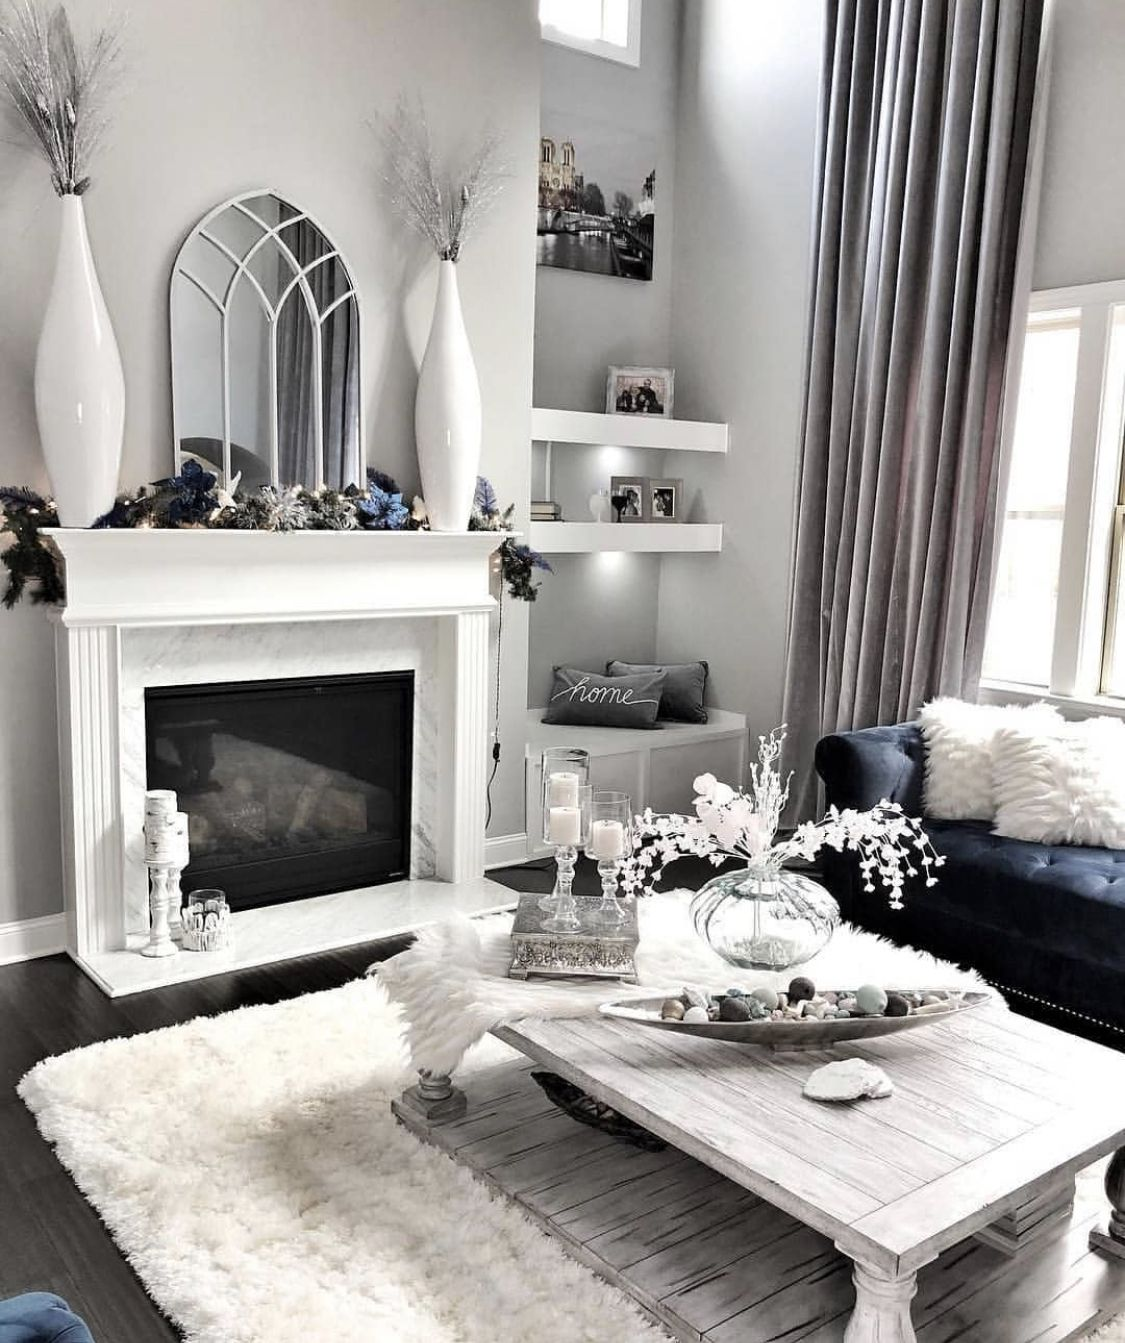 Attractive Interiors Home Staging: Pin By Sheon Paige On Inside The Home